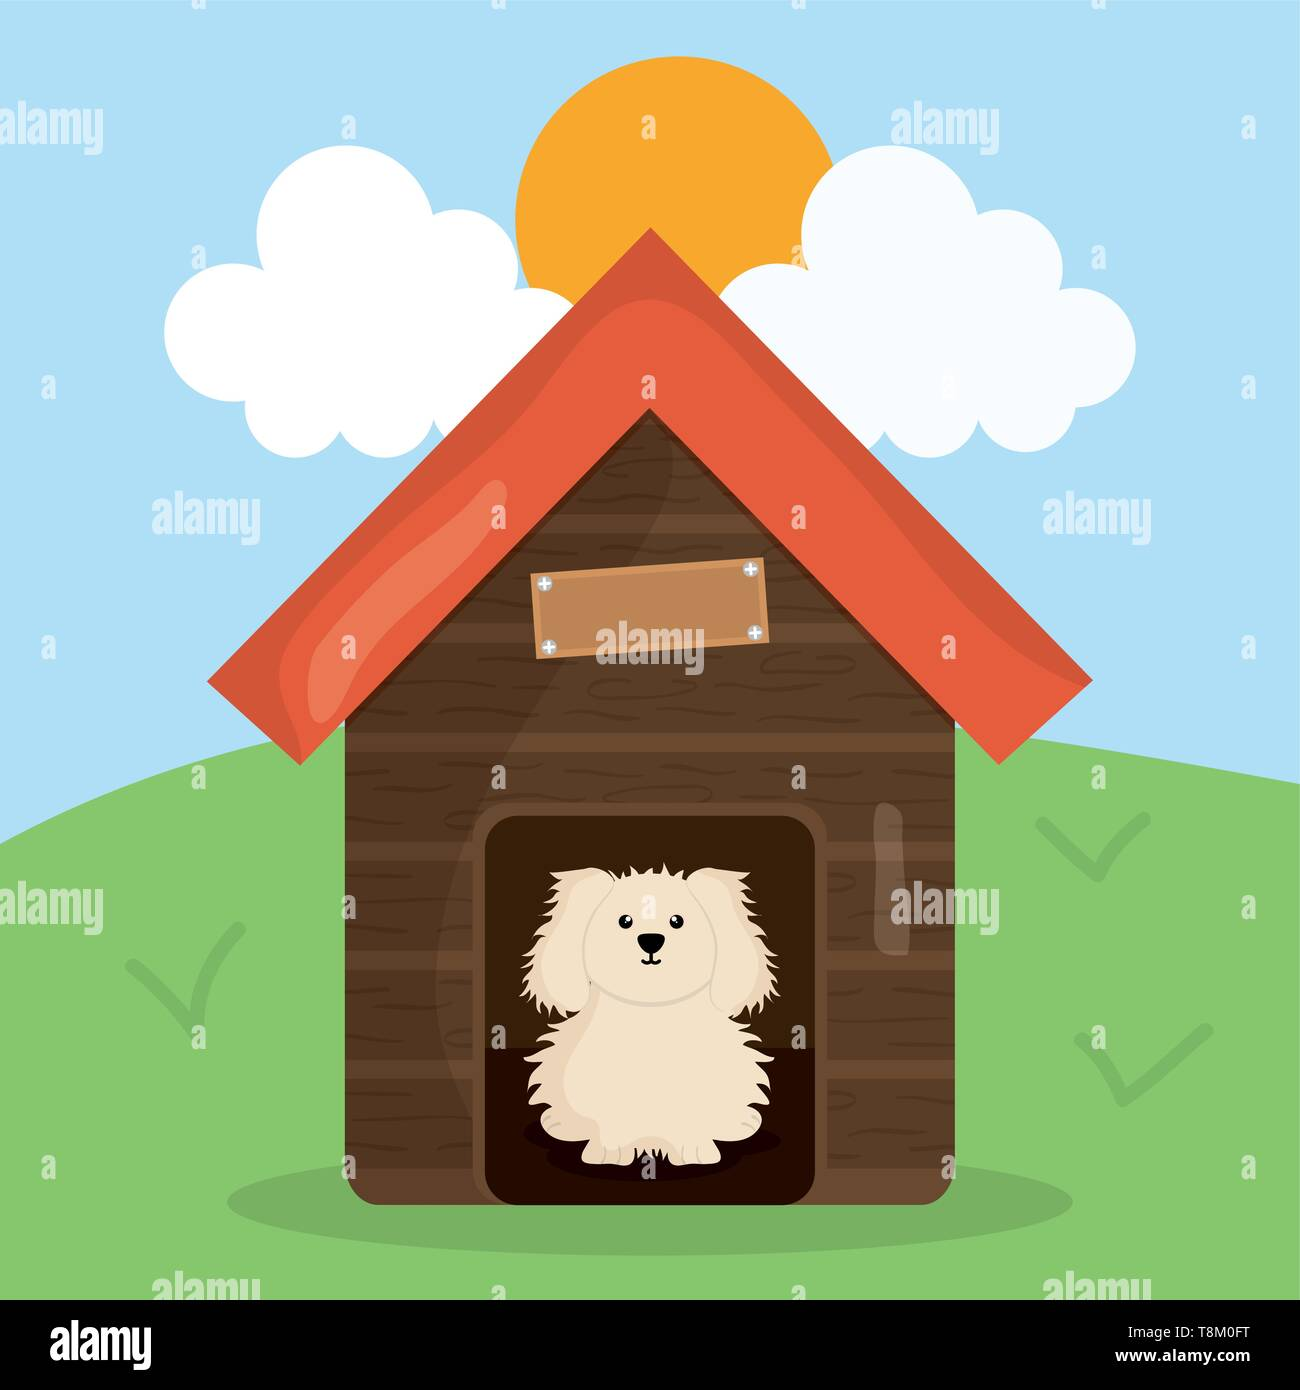 cute little dog in wooden house pet character vector illustration design - Stock Image